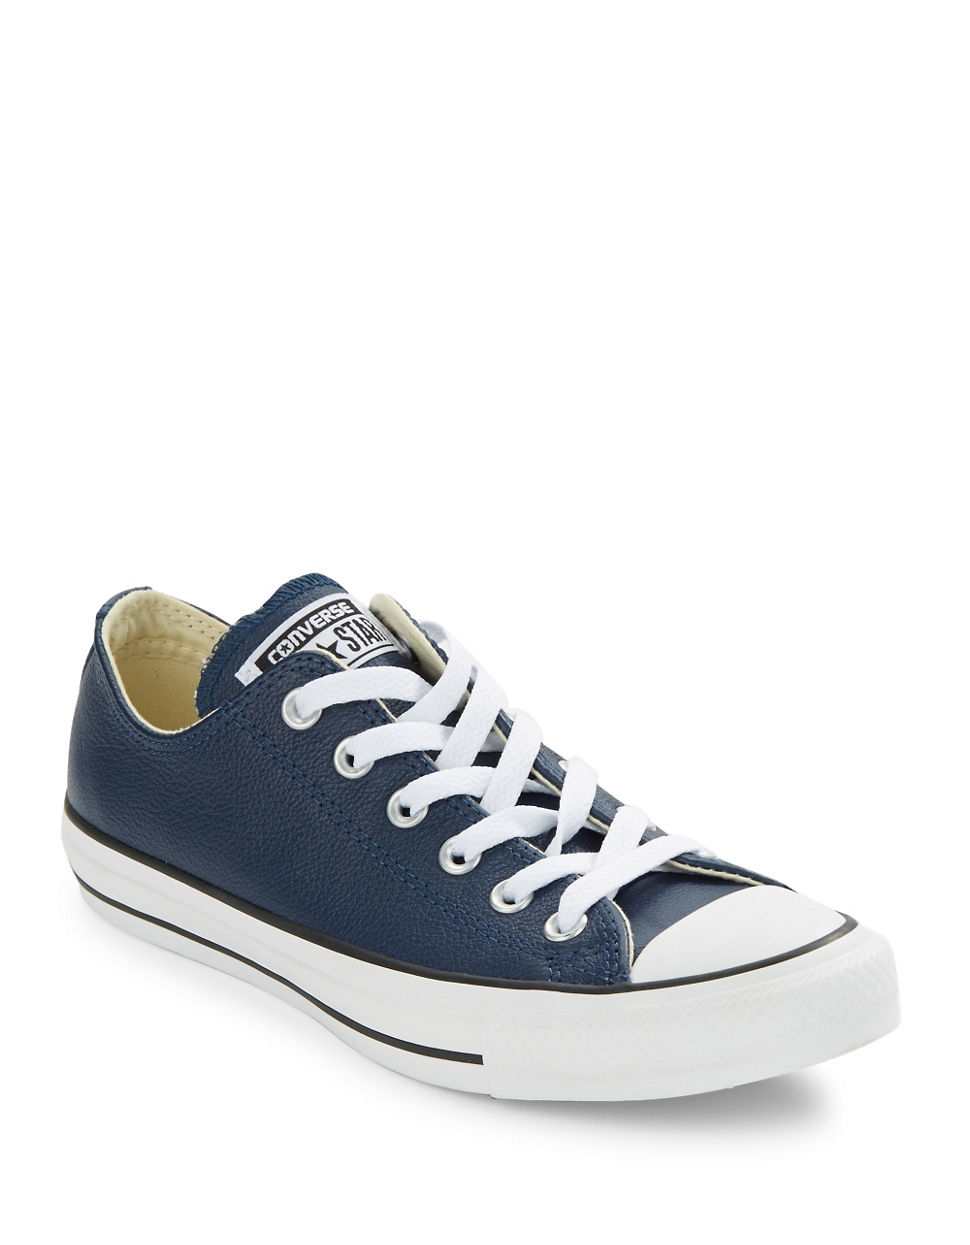 Unisex Sneaker Converse Unisex Chuck Taylor Leather Sneakers In Blue For